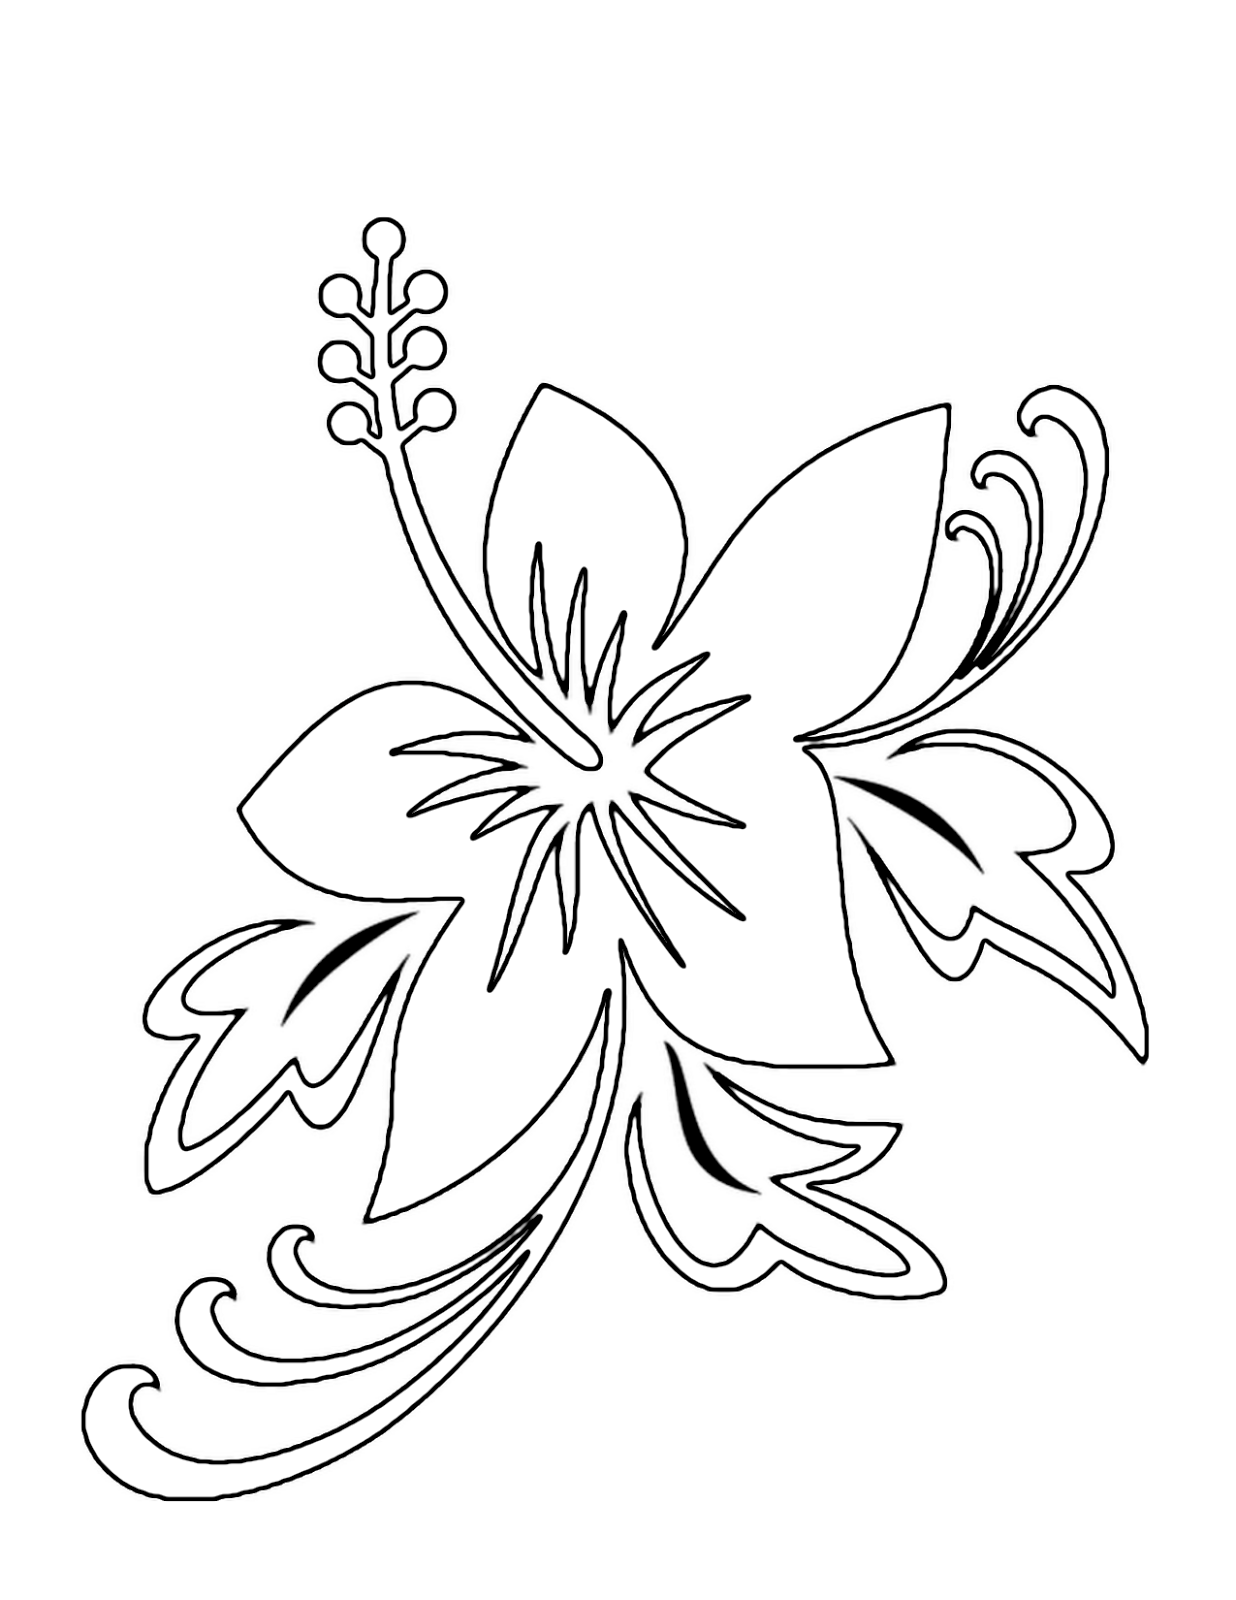 Flower Coloring Pages for Toddlers, Preschool and  - printable coloring pages flowers